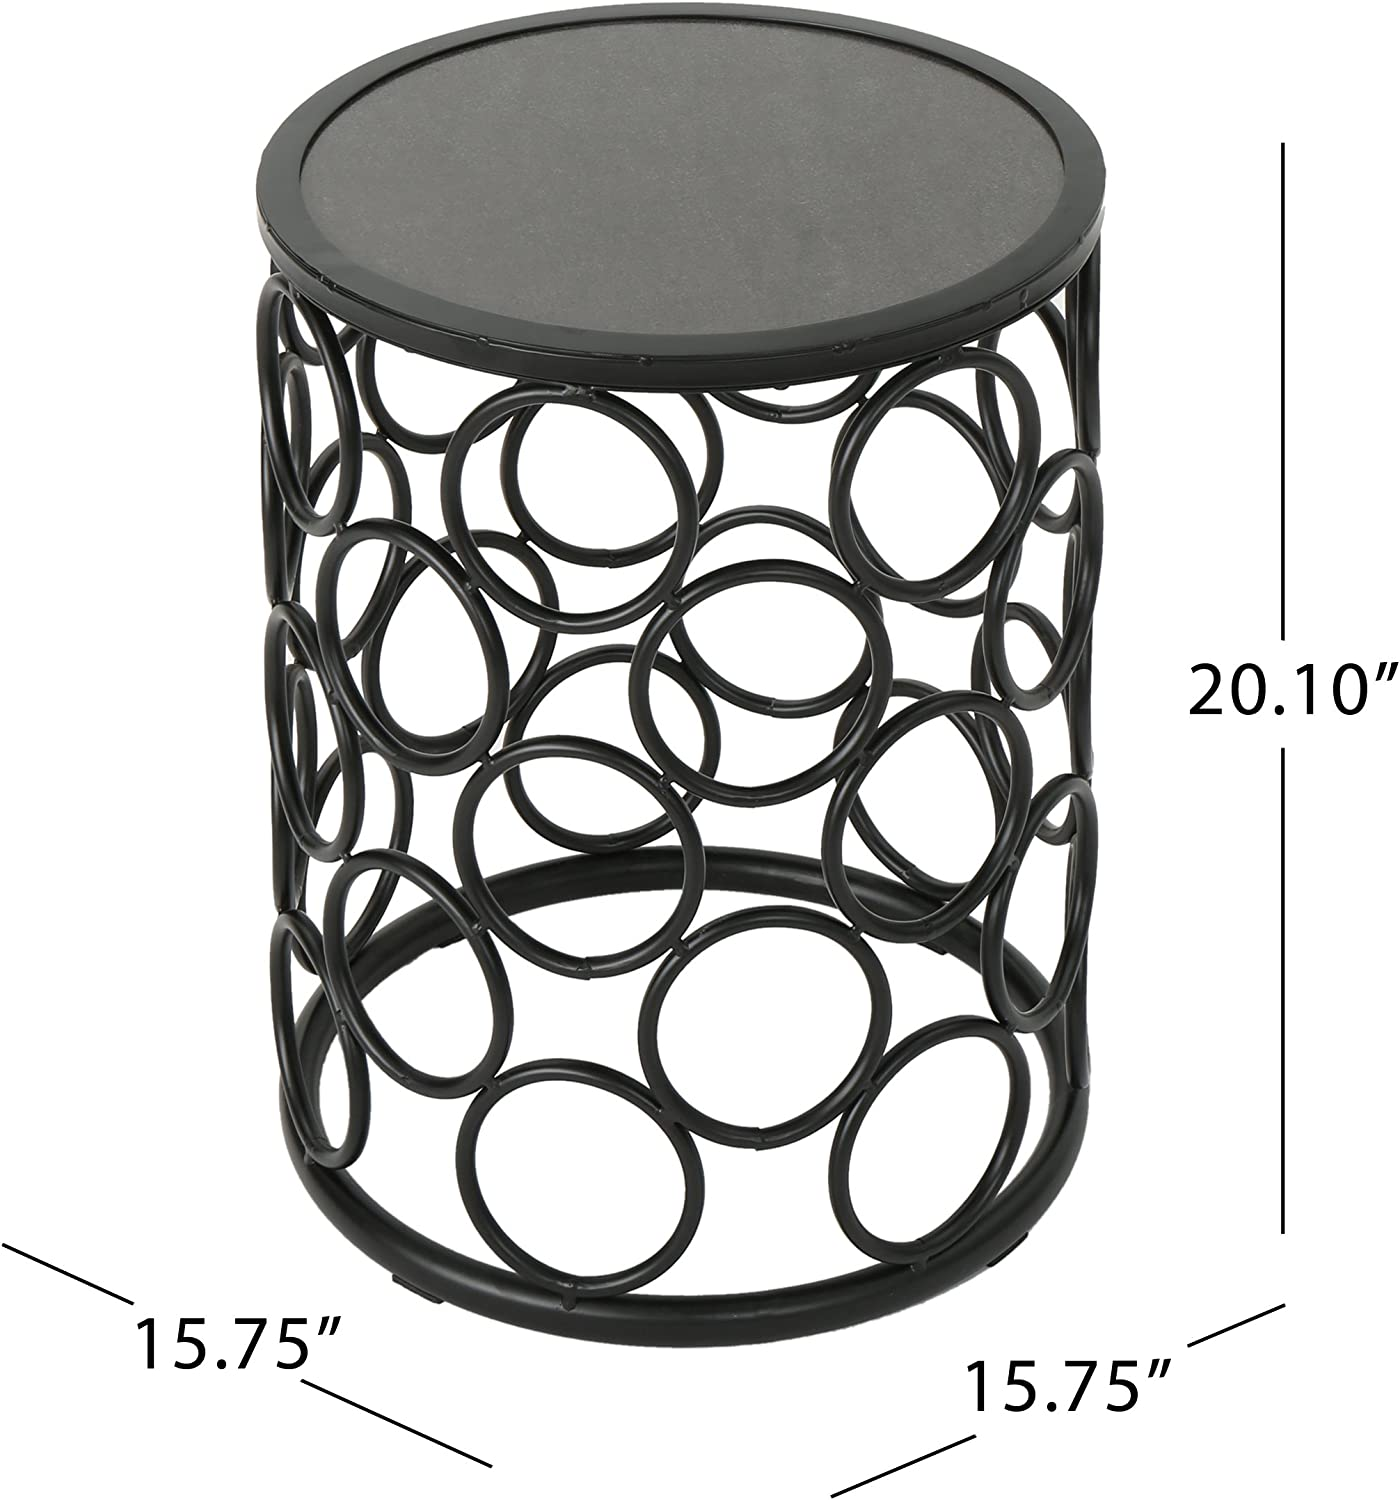 Christopher Knight Home 304216  Athena Indoor Modern 16 Inch Finish Side Table, Grey Ceramic Tile/Black Metal